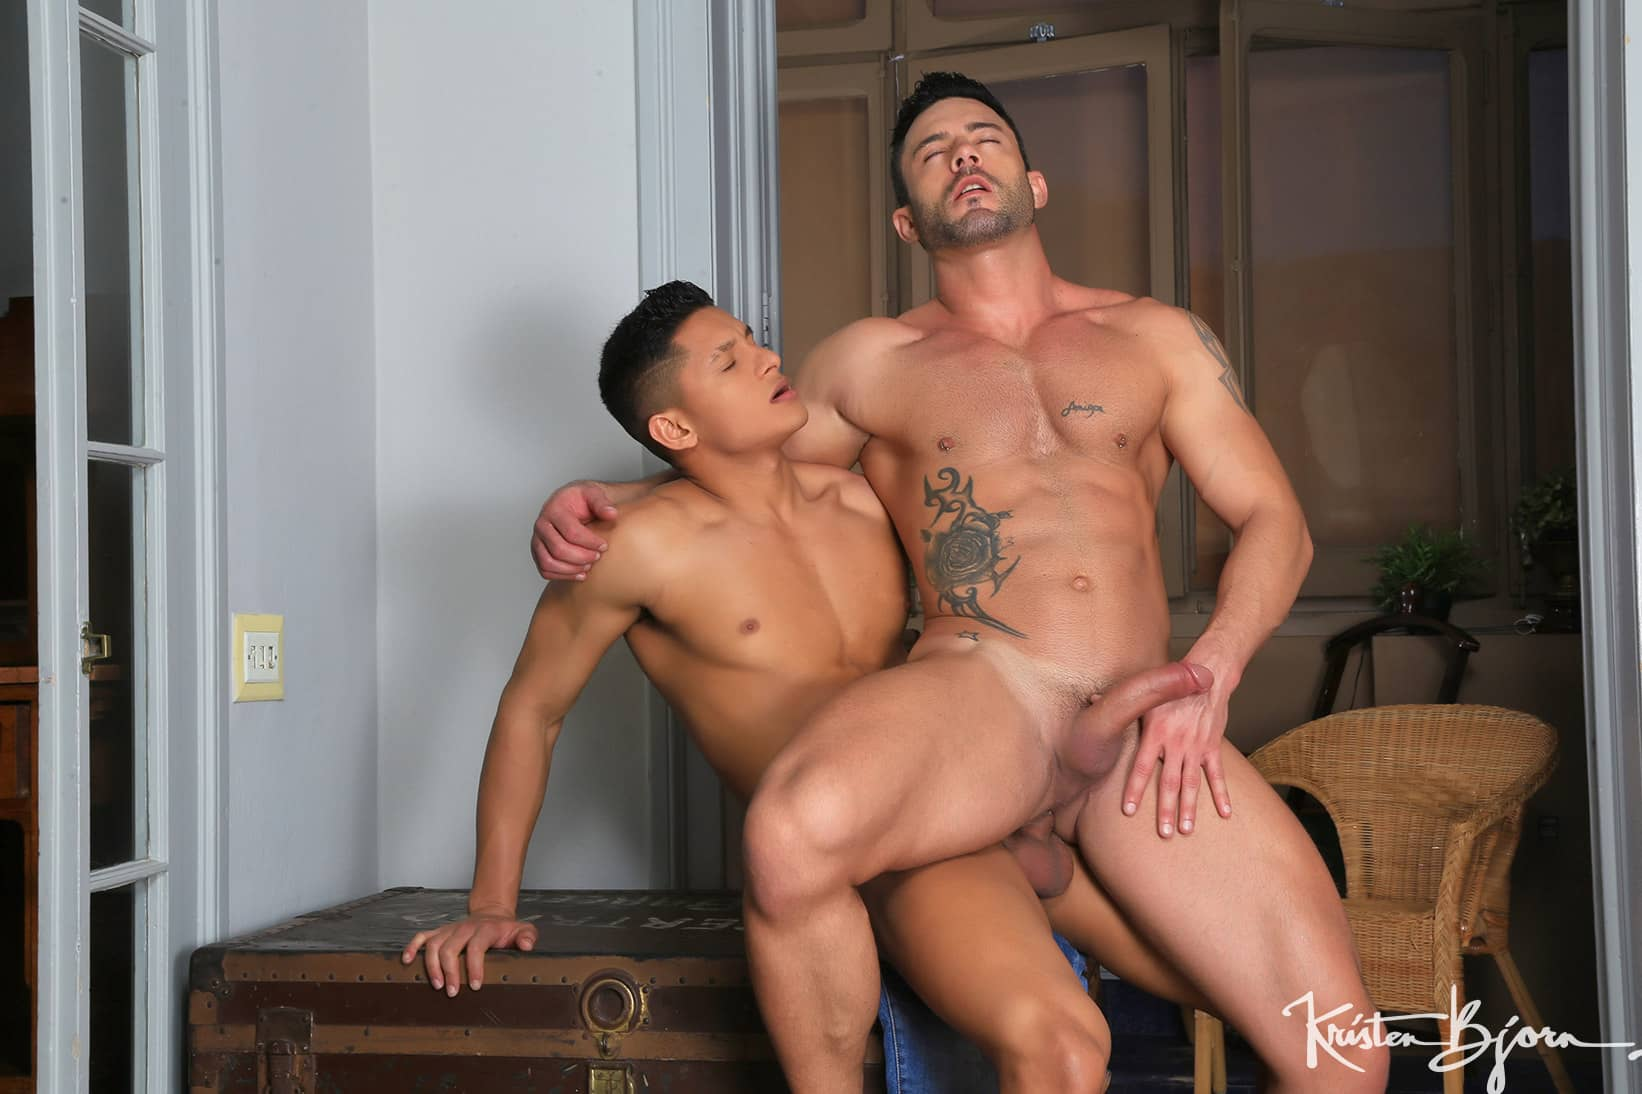 Eager To Please – Santiago Rodriguez and Andy Star